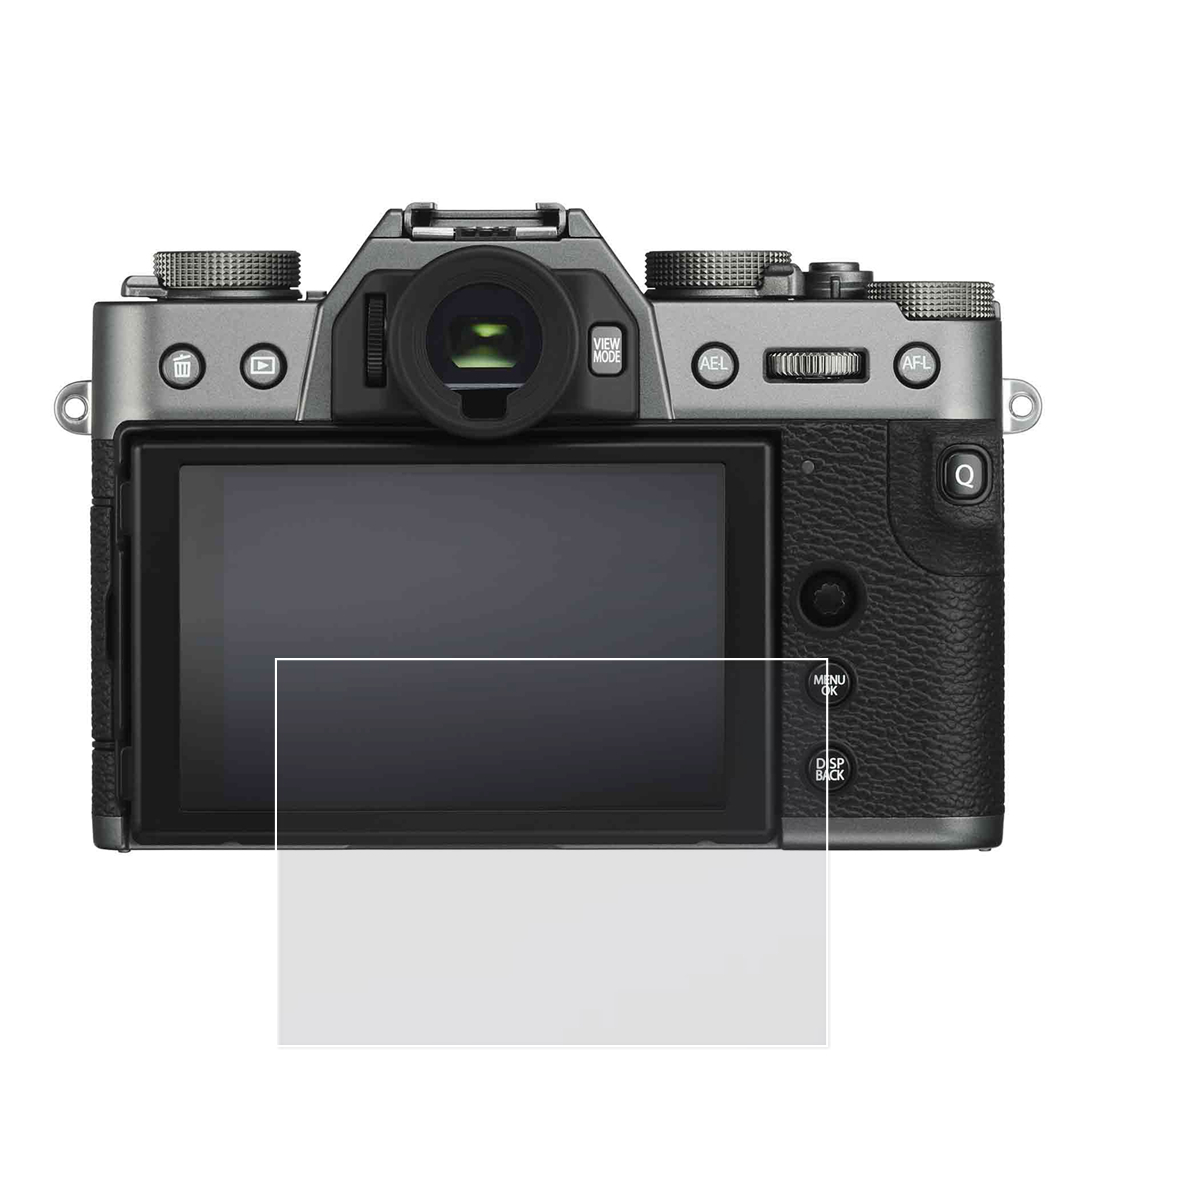 Self-adhesive Tempered Glass / Film LCD Screen Protector For Fujifilm Fuji X-T30 XT30 X-T20 X-T10 X-E3 XE3 X-A1 X-A2 X-M1 Camera